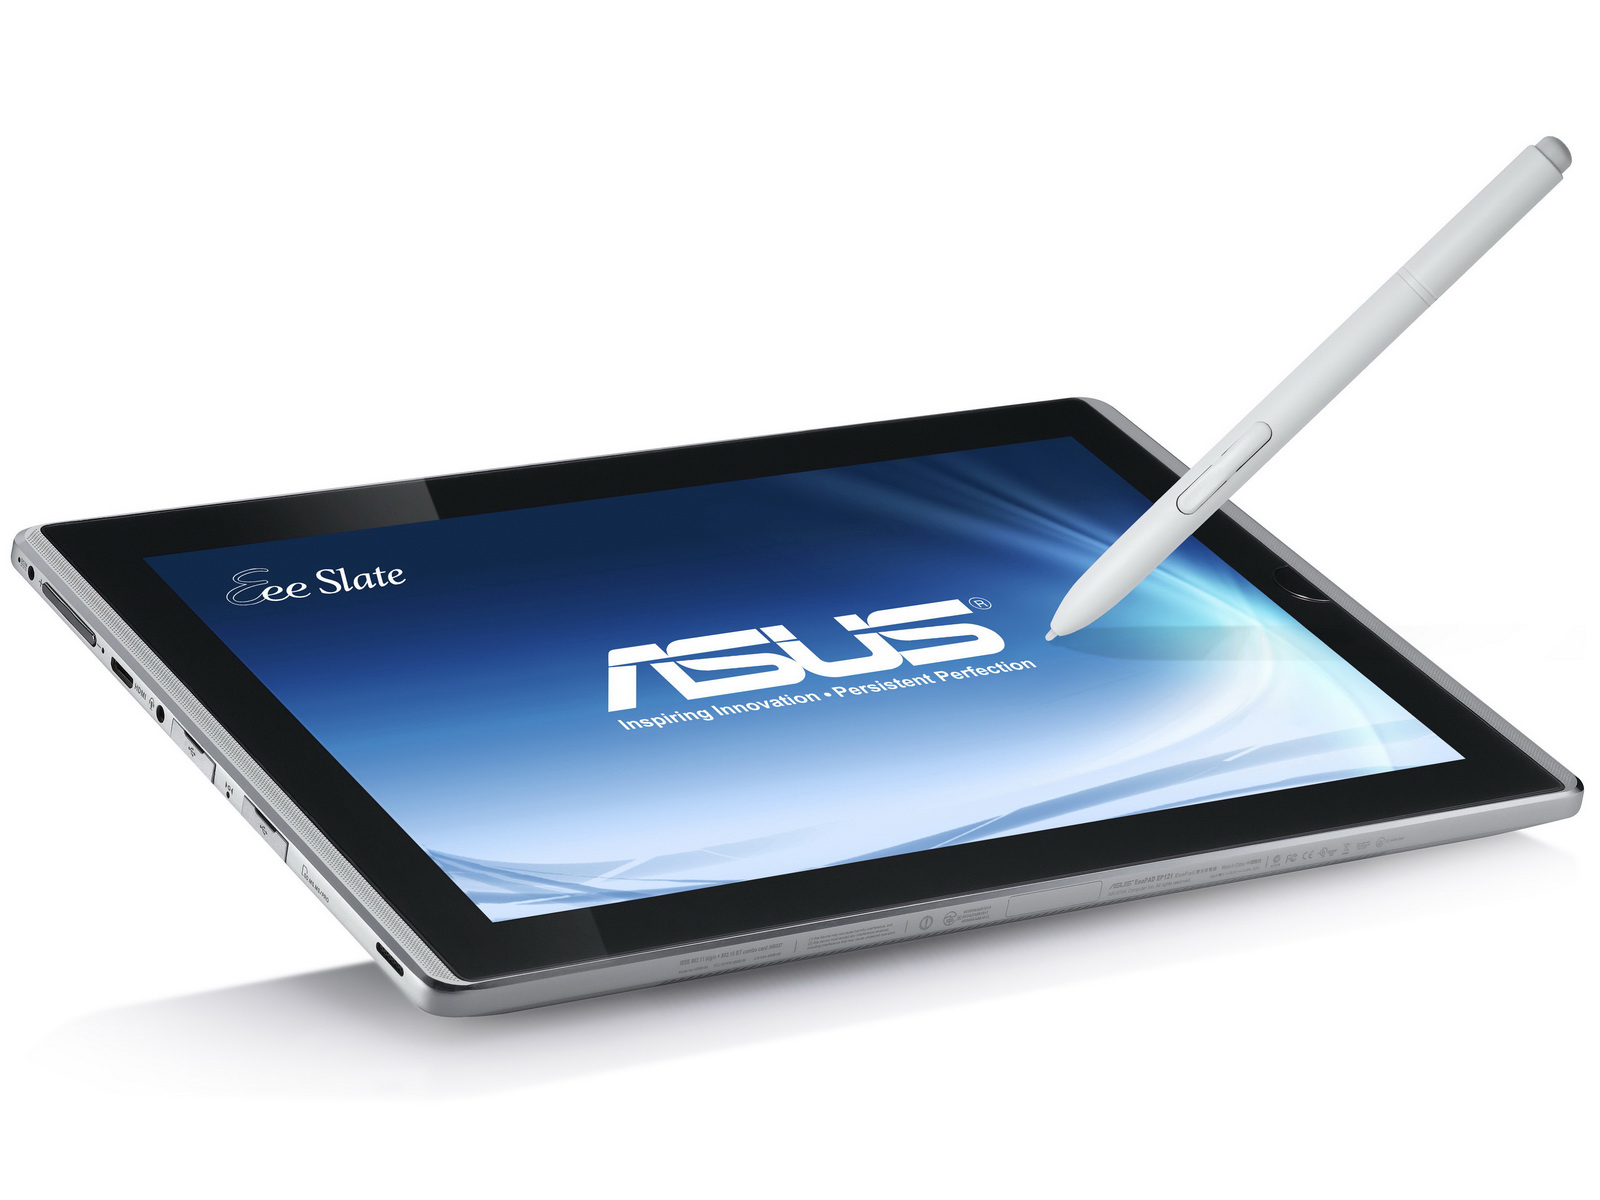 asus 12 1 zoll tablet eee slate b121 mit windows 7 f r 1150 euro news. Black Bedroom Furniture Sets. Home Design Ideas